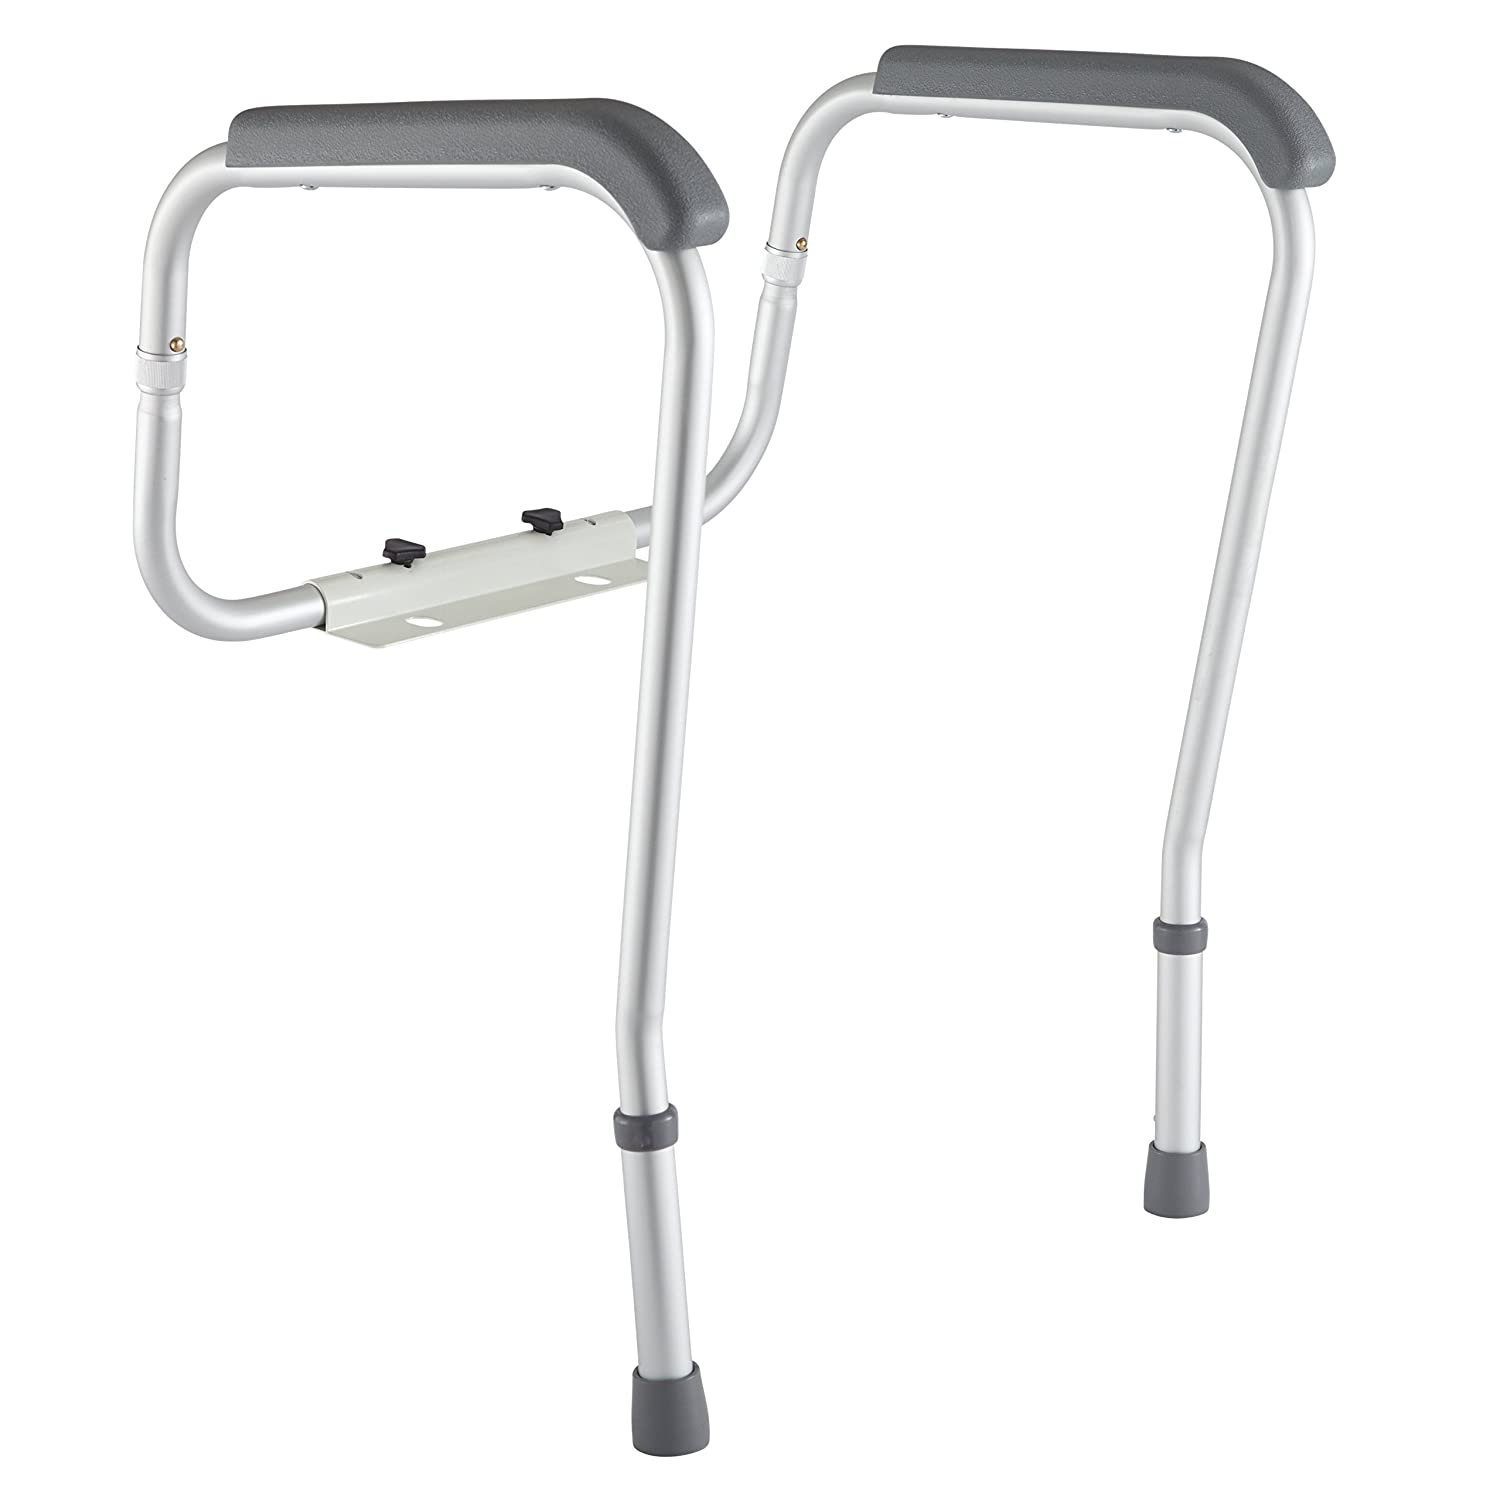 Amazon.com: Medline Toilet Safety Rails: Health & Personal Care